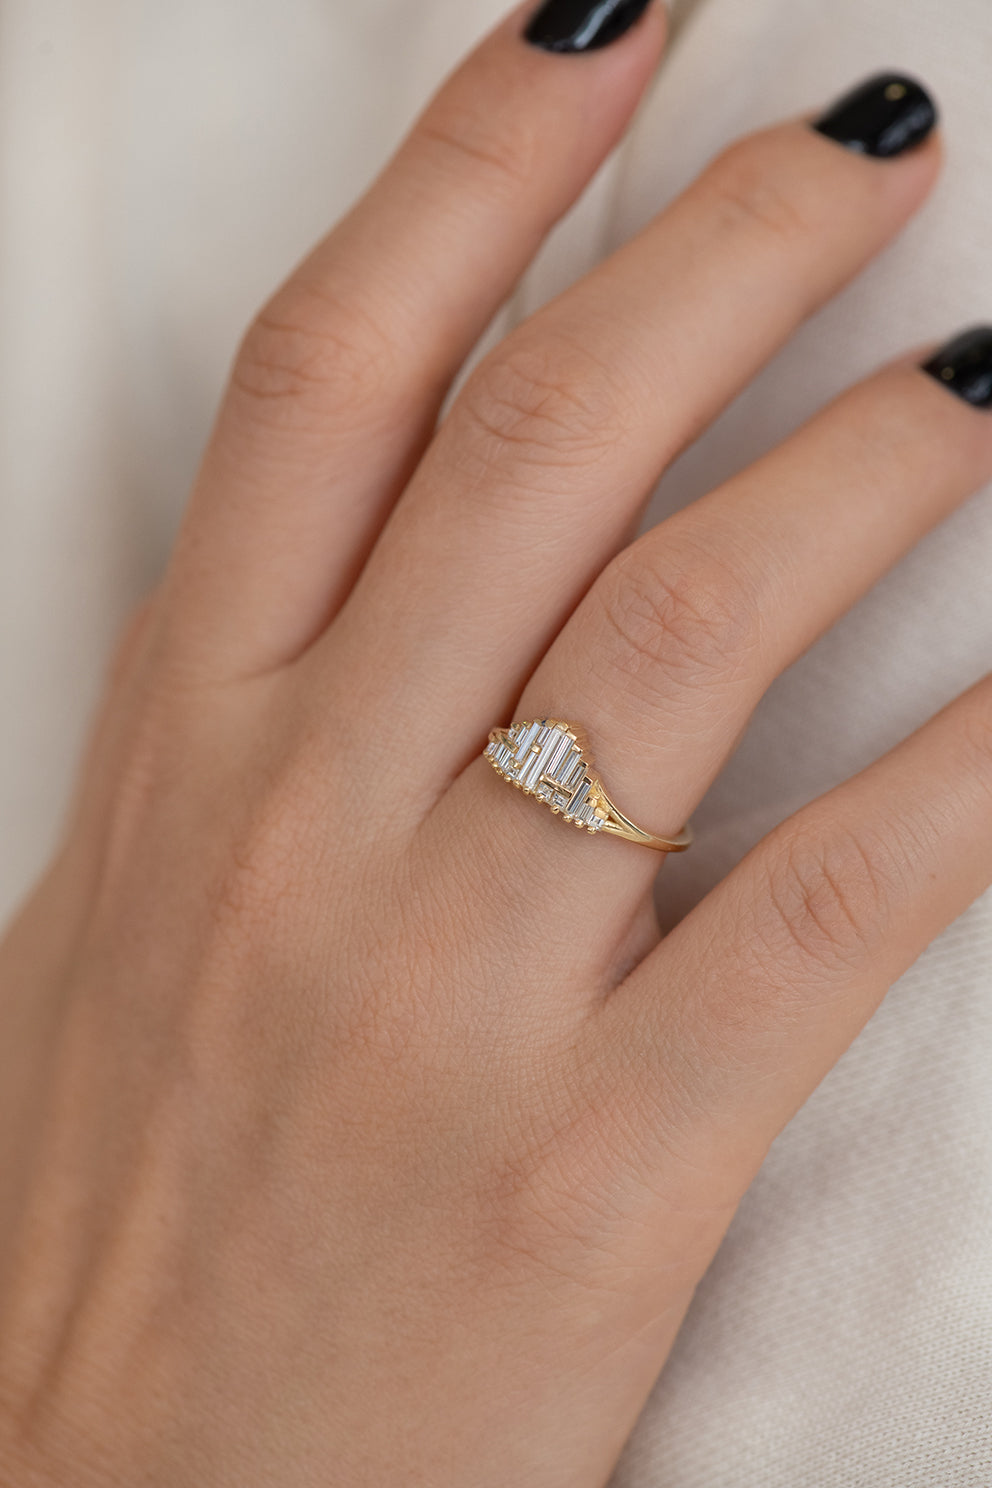 Art Deco Style Engagement Ring on Hand Up Close Side View